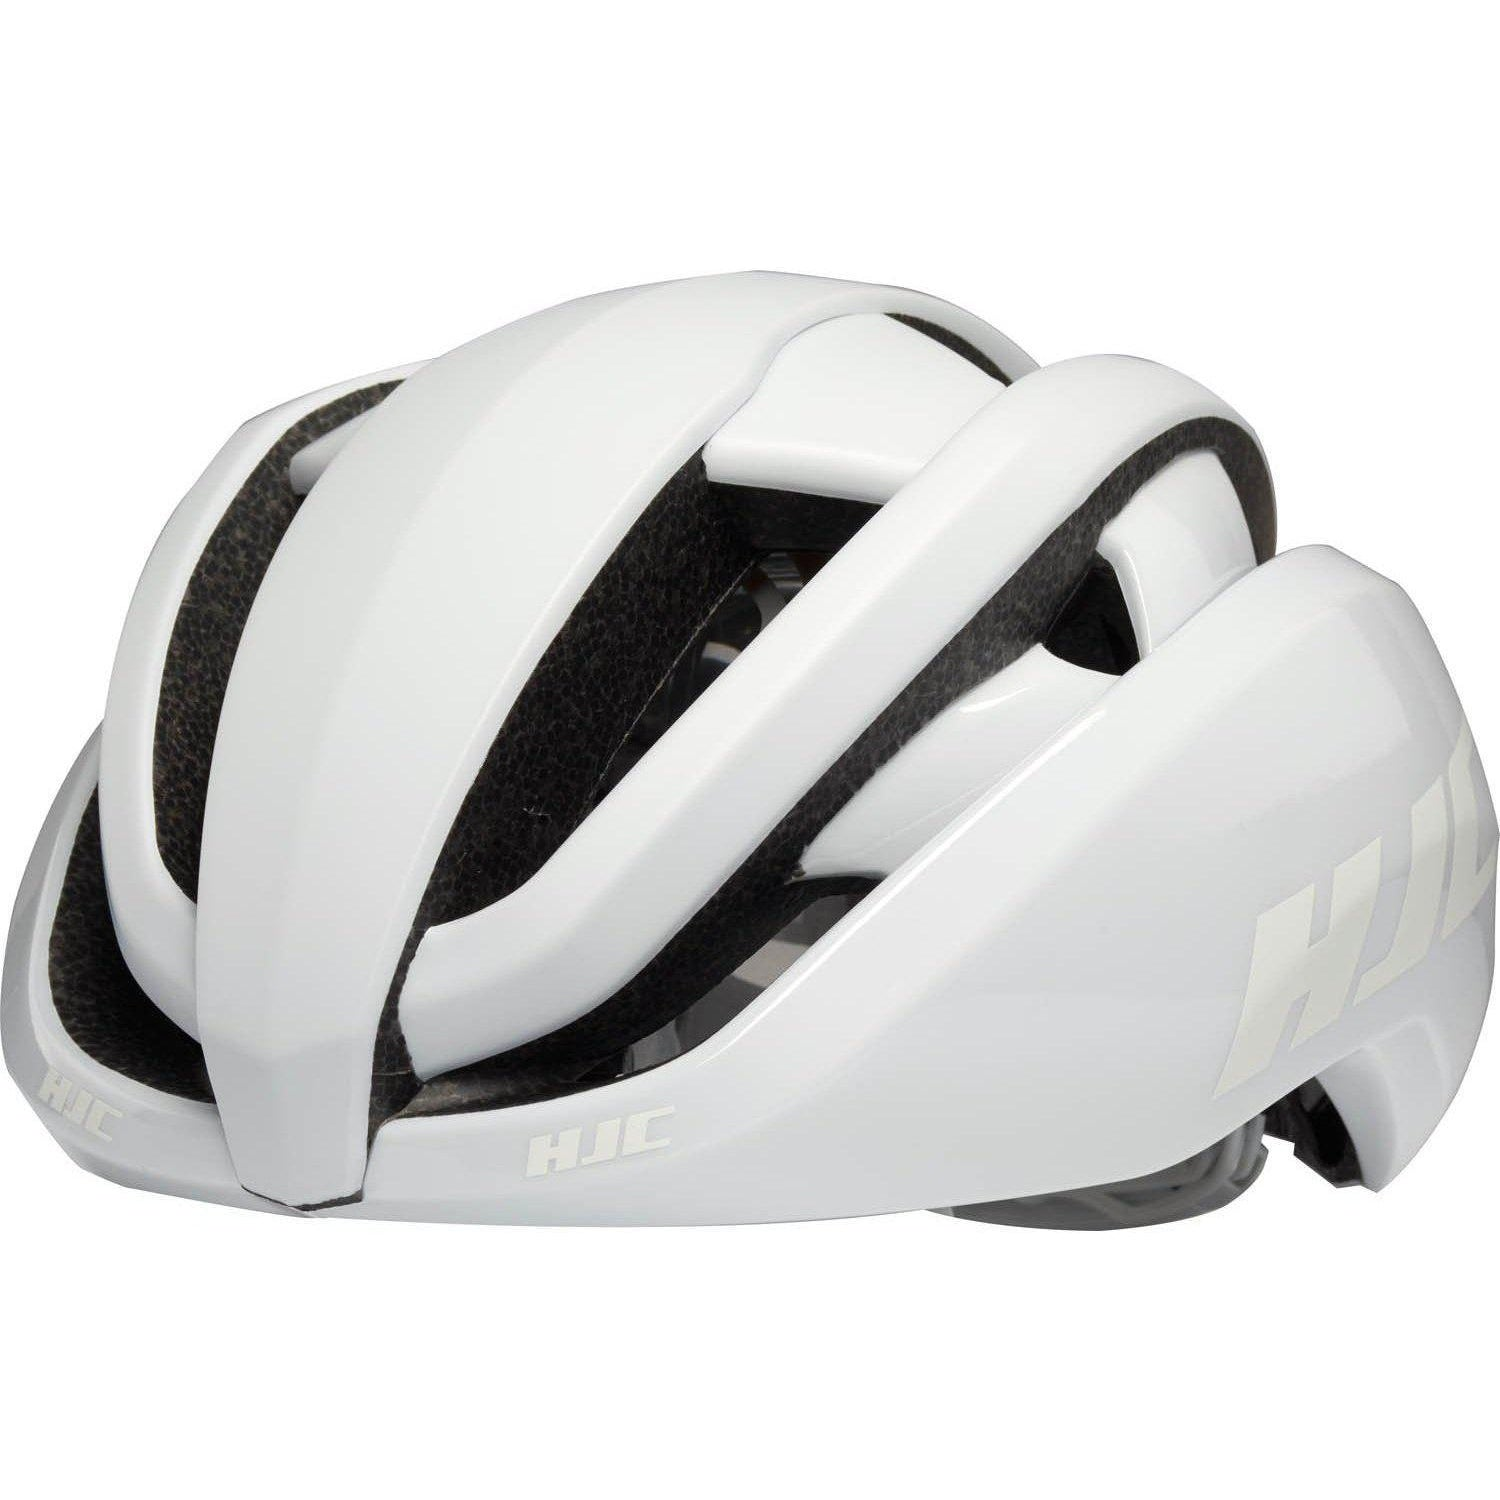 HJC-HJC Ibex 2.0 Road Cycling Helmet-White-S-HJC81249001-saddleback-elite-performance-cycling